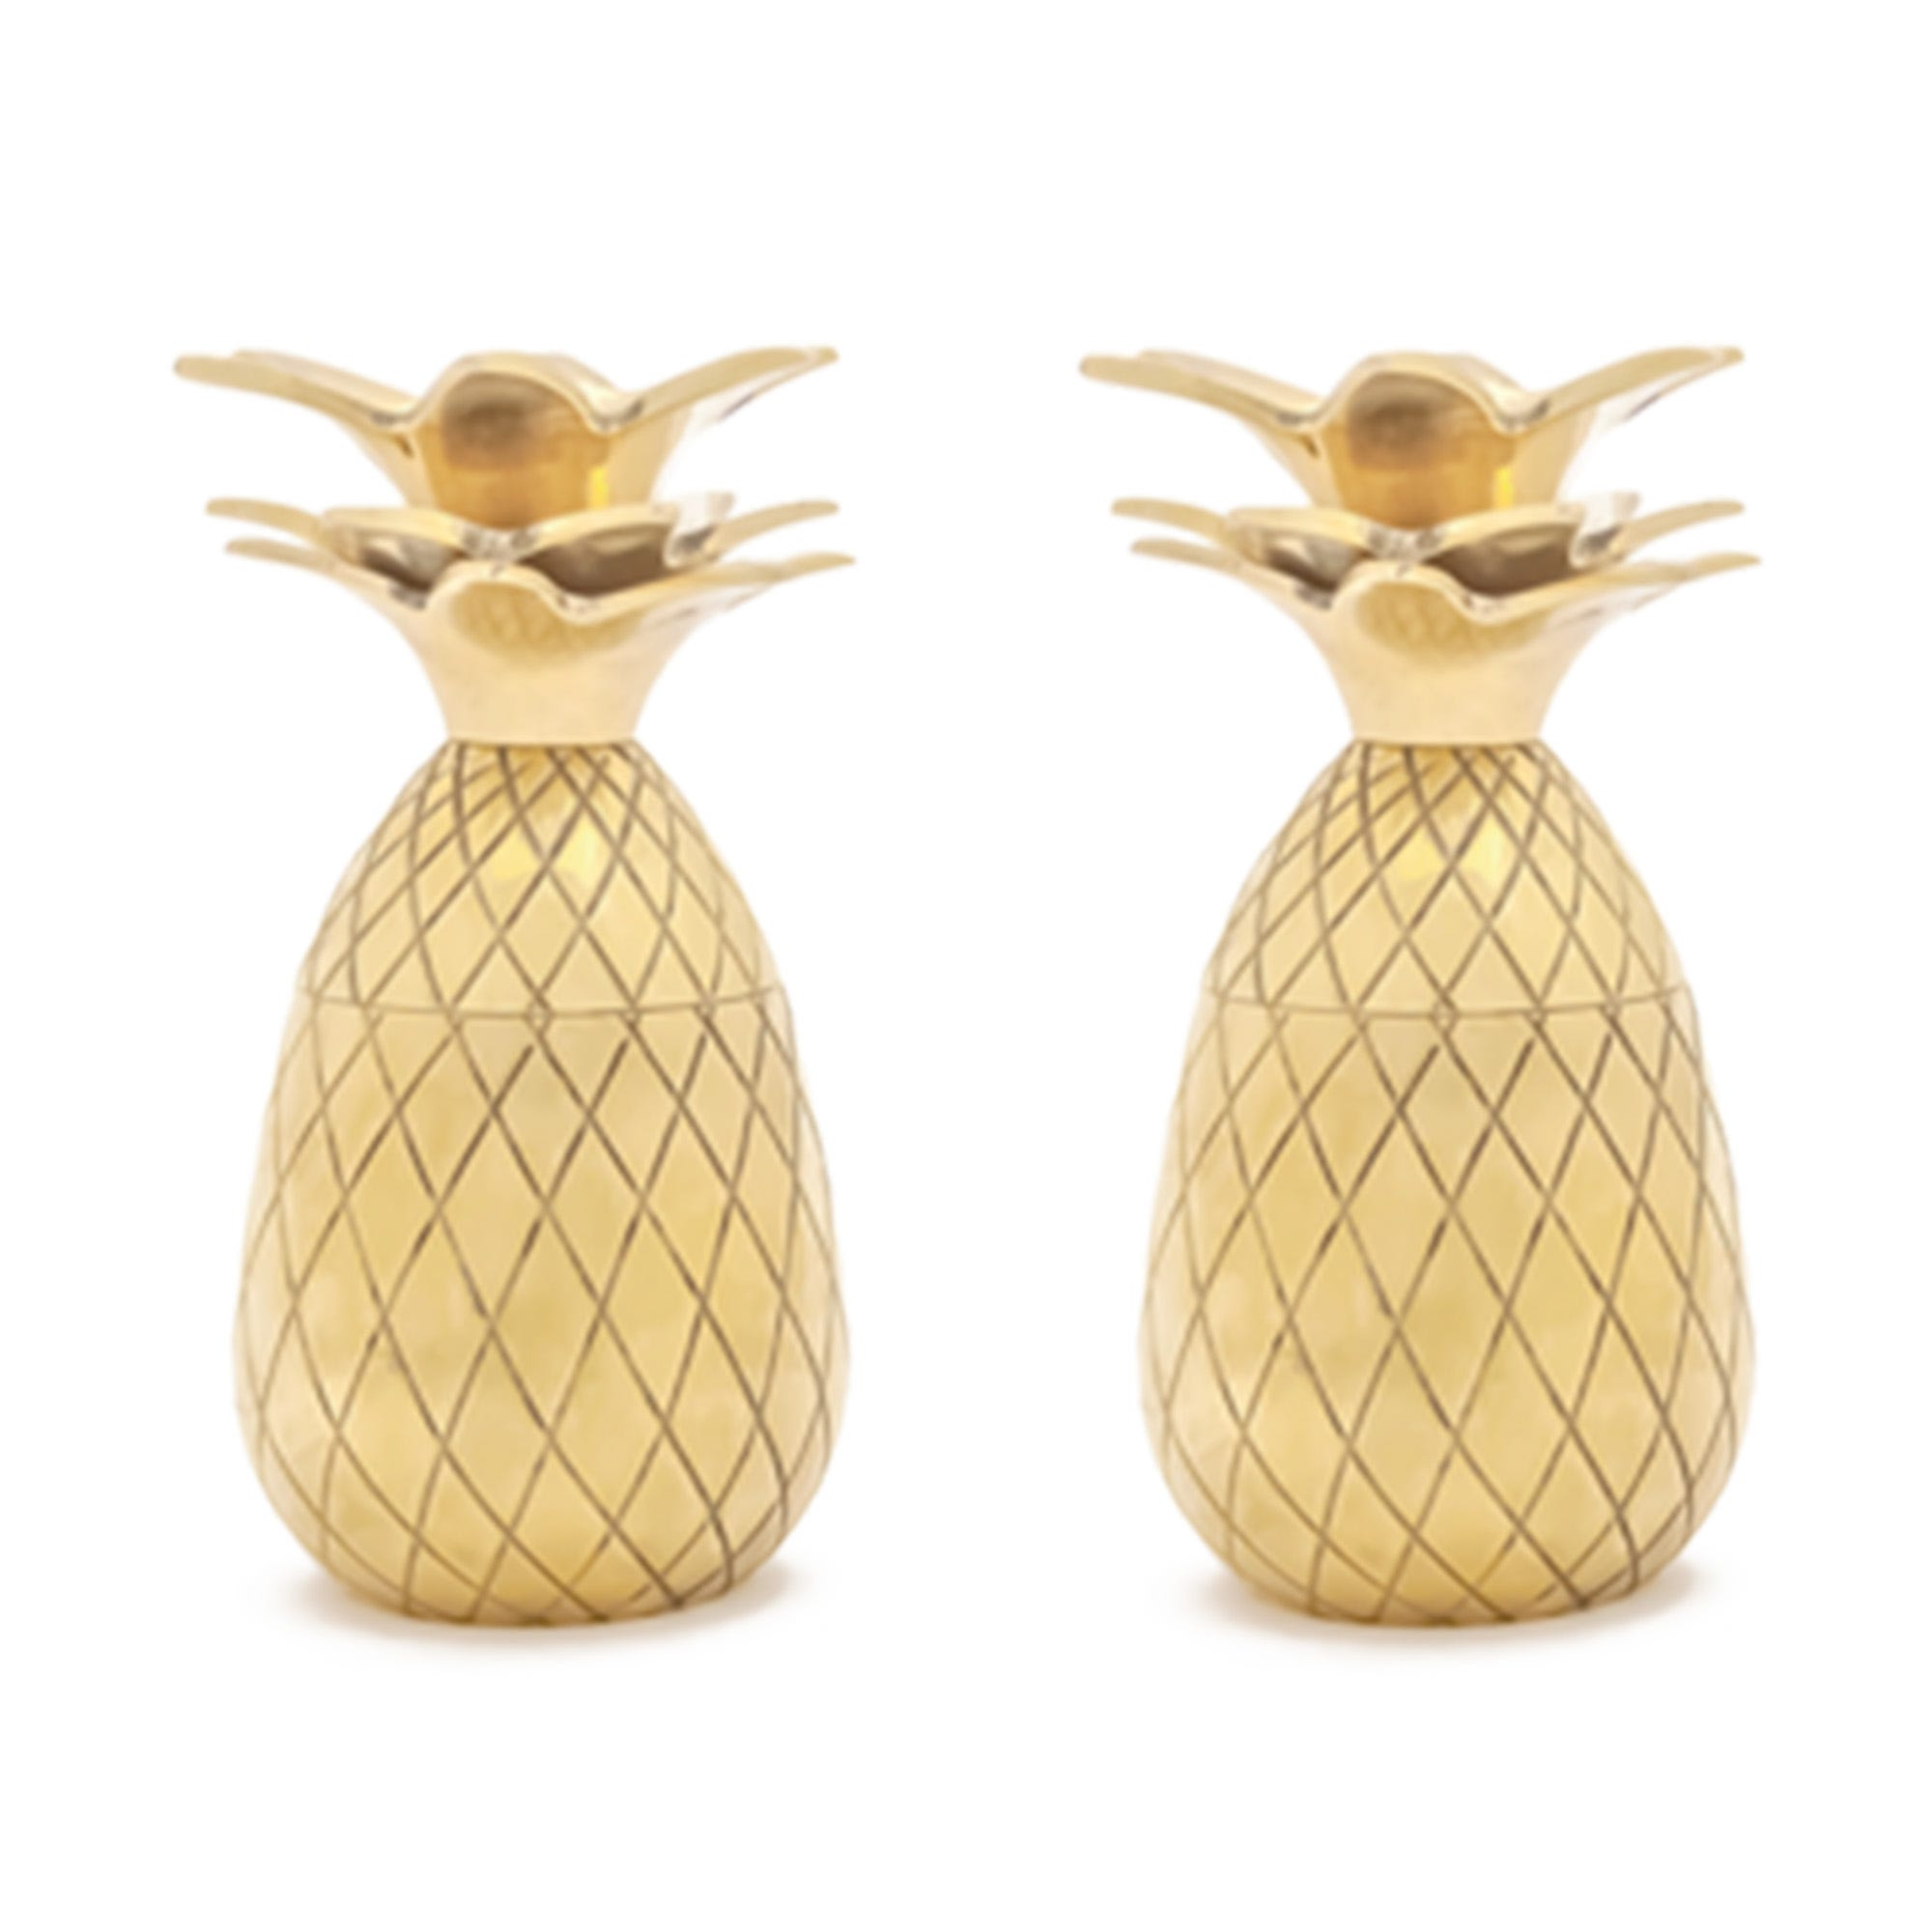 Pineapple Shot Glasses - Gold